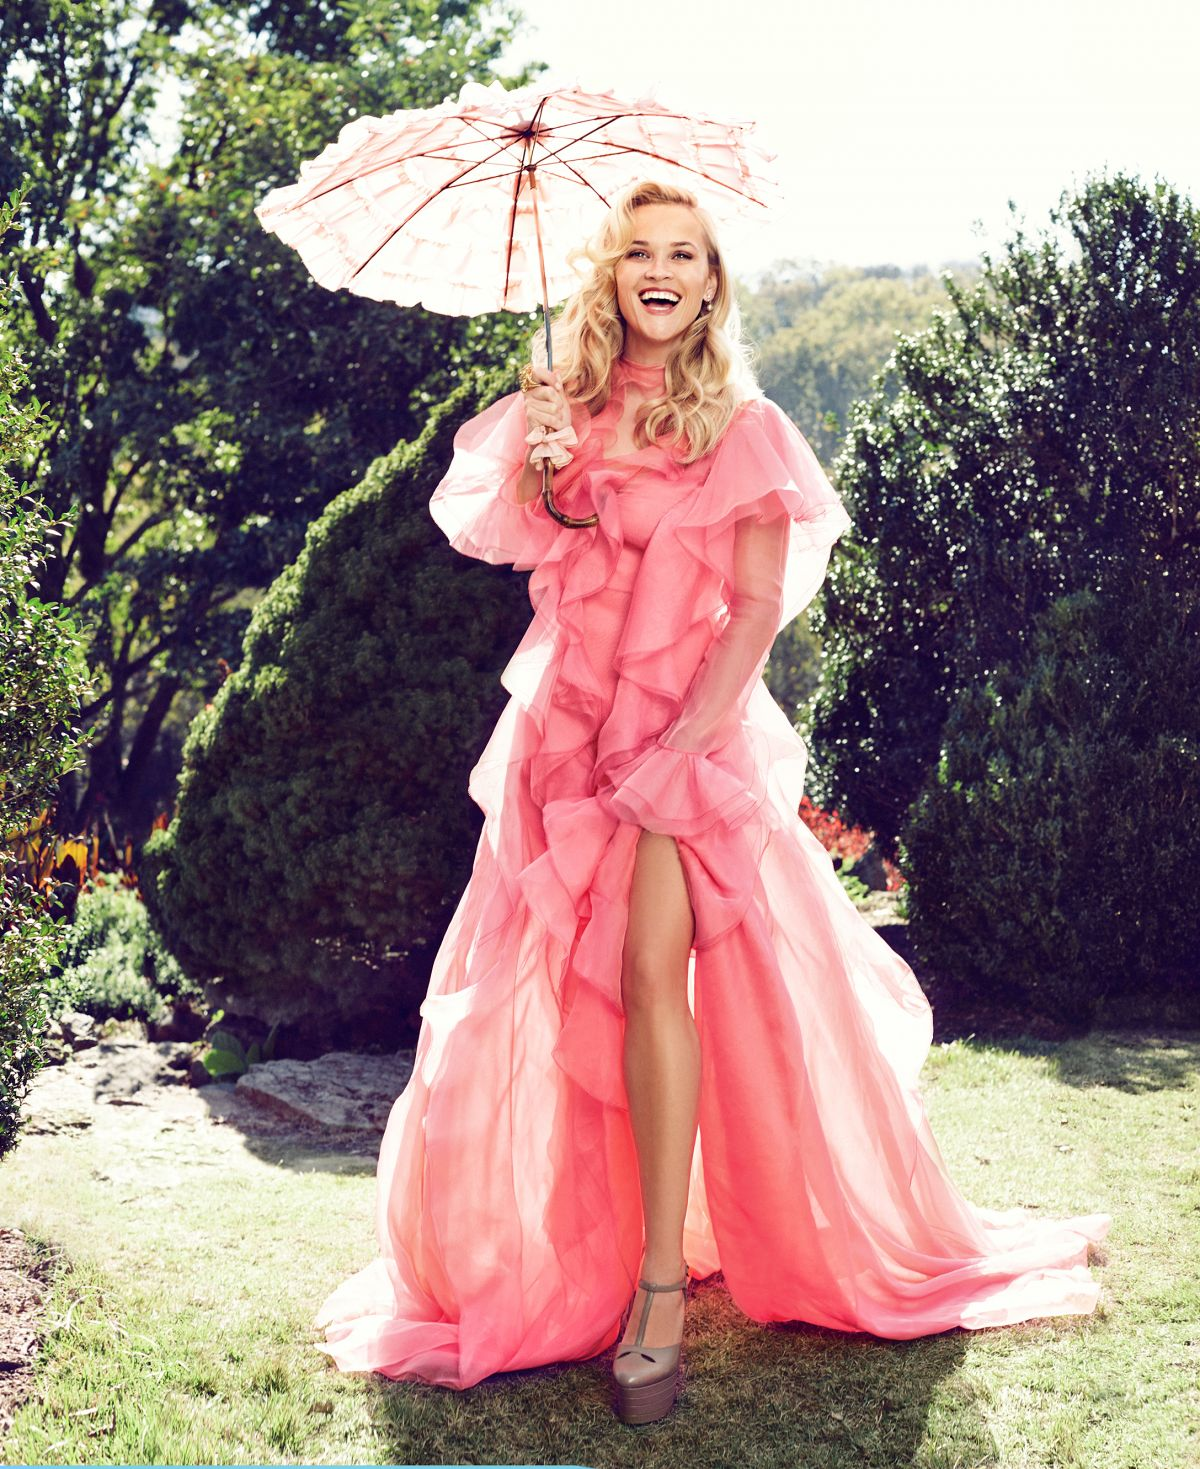 Reese Witherspoon – Harper's Bazaar Magazine (February 2016)